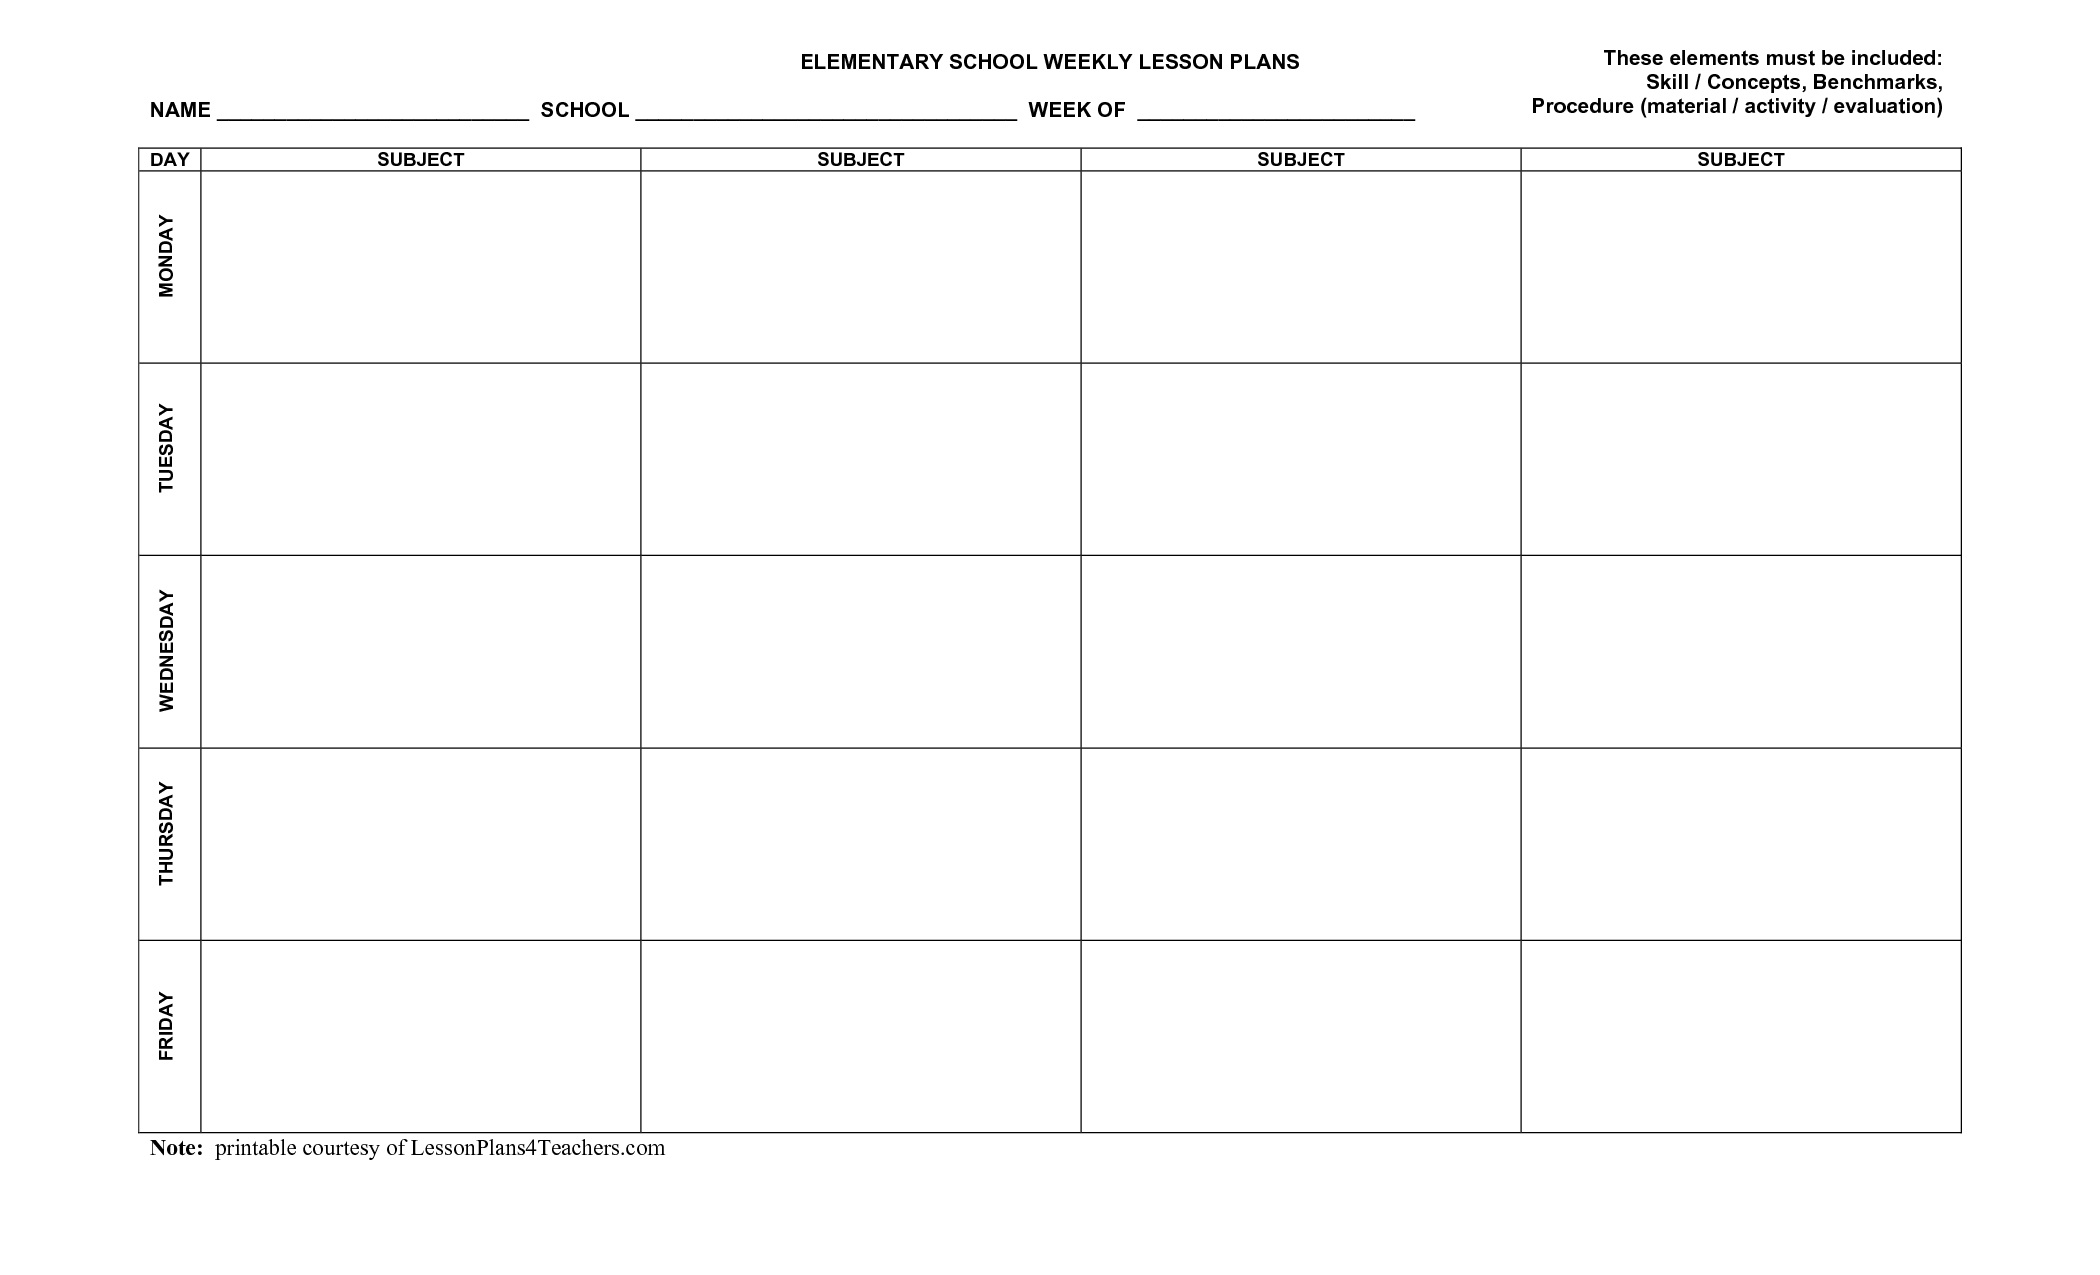 008 Surprising Daycare Lesson Plan Template High Resolution  Sample Child Care Curriculum PlanningFull